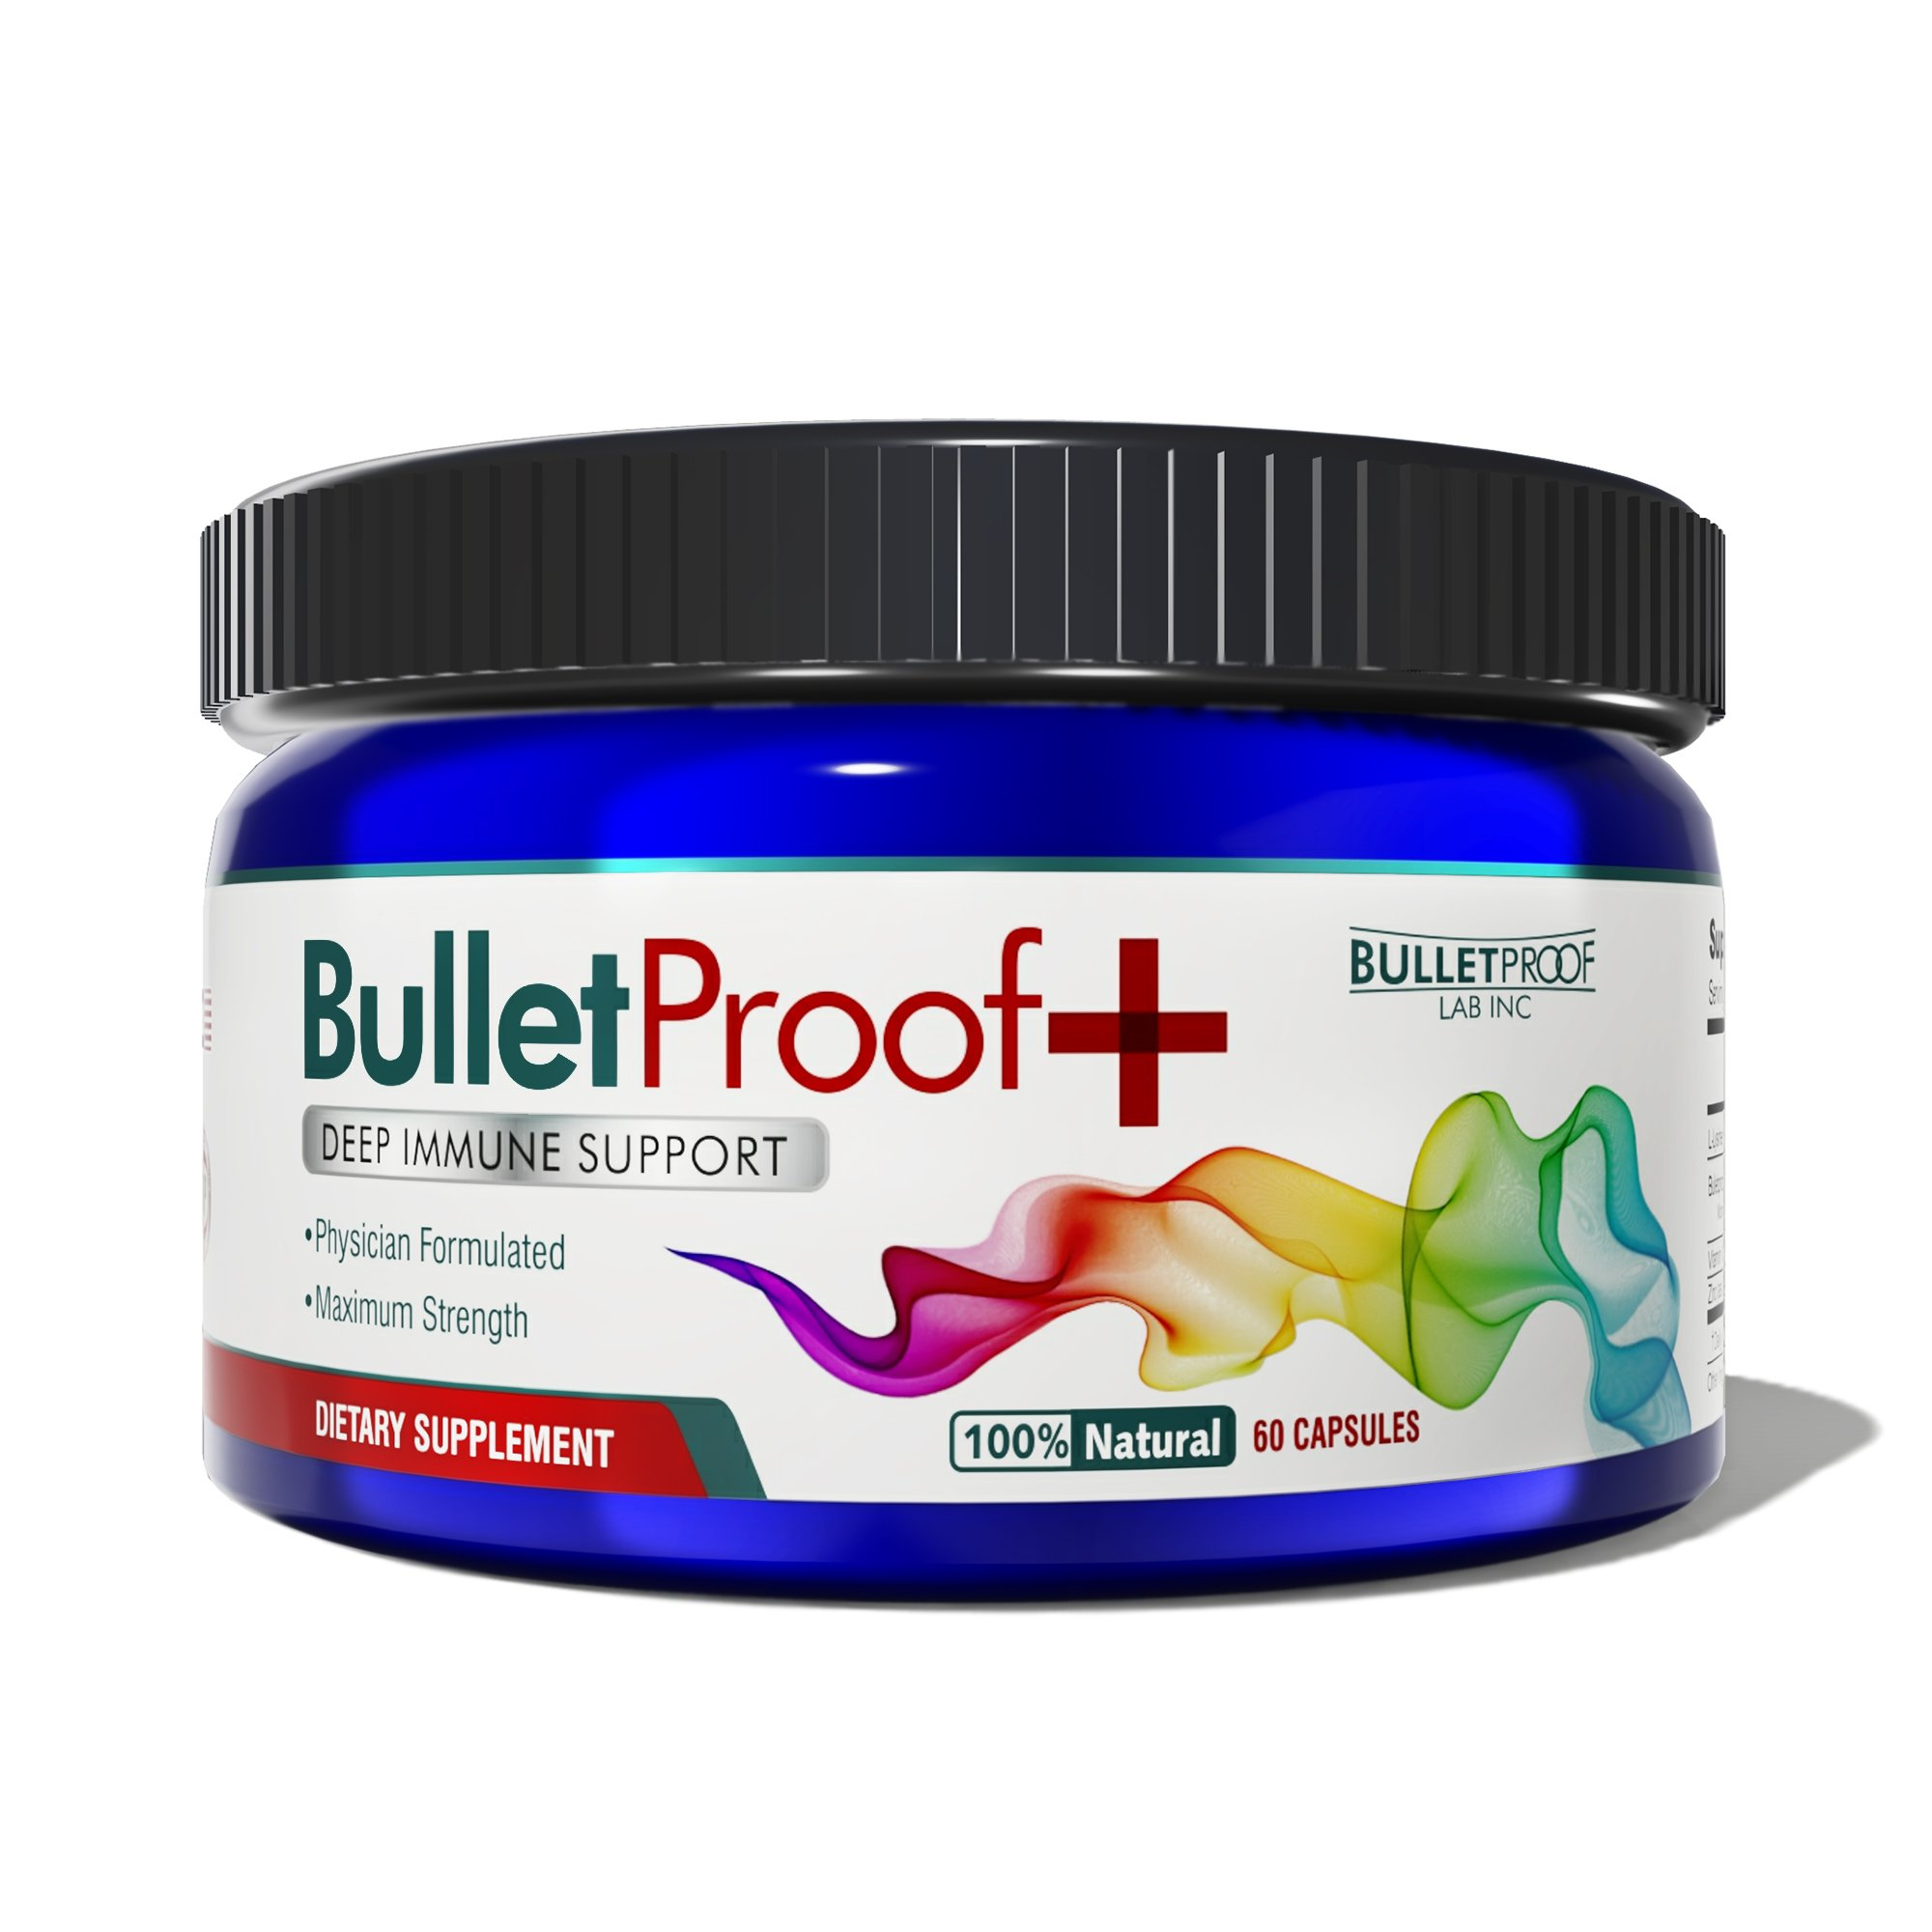 BULLETPROOF+ herpes and shingles treatment – formulated to shorten healing time and suppress future outbreaks   Herpes and Shingles Supplement